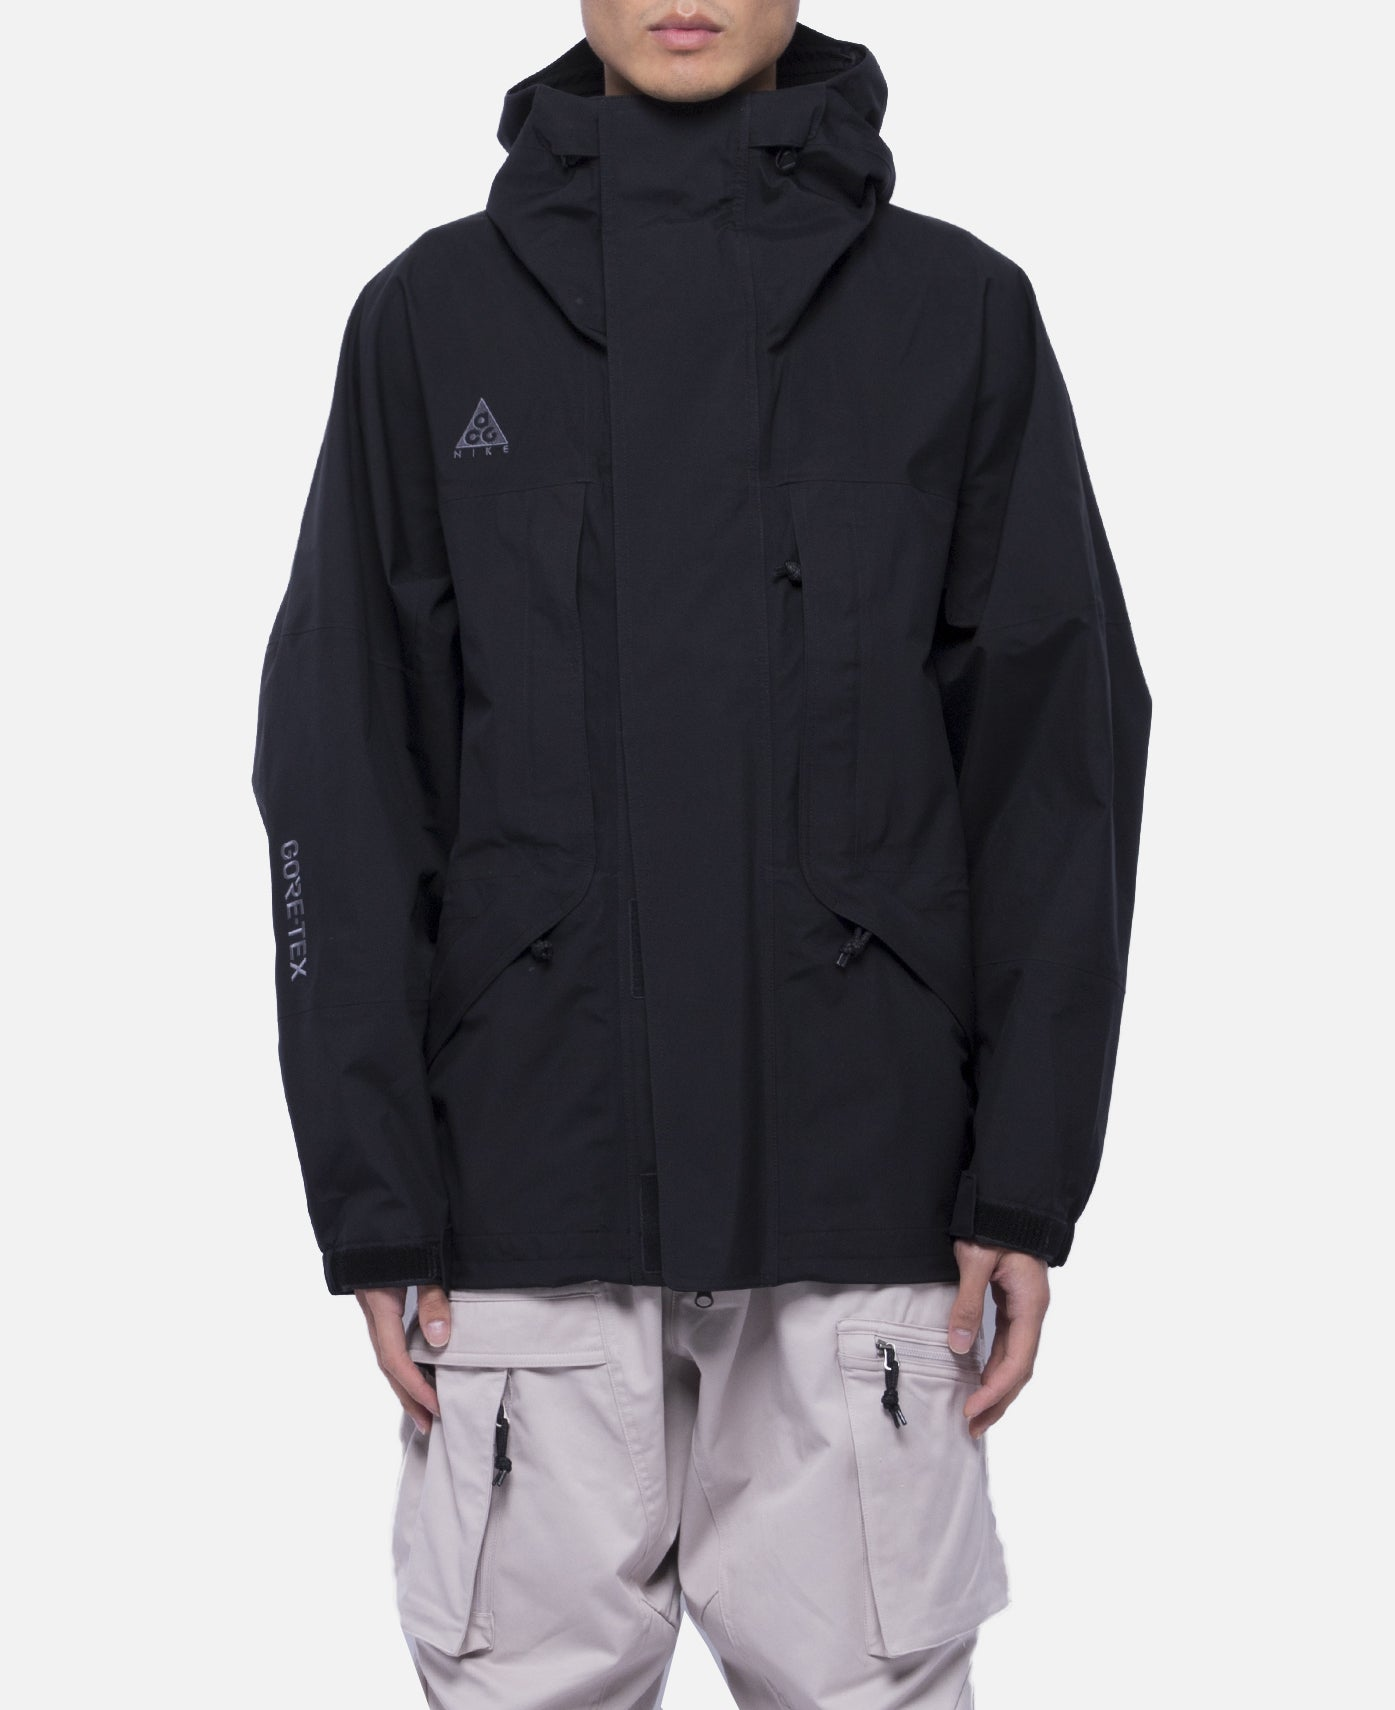 AS M NRG ACG Gore-Tex Jacket (Black)